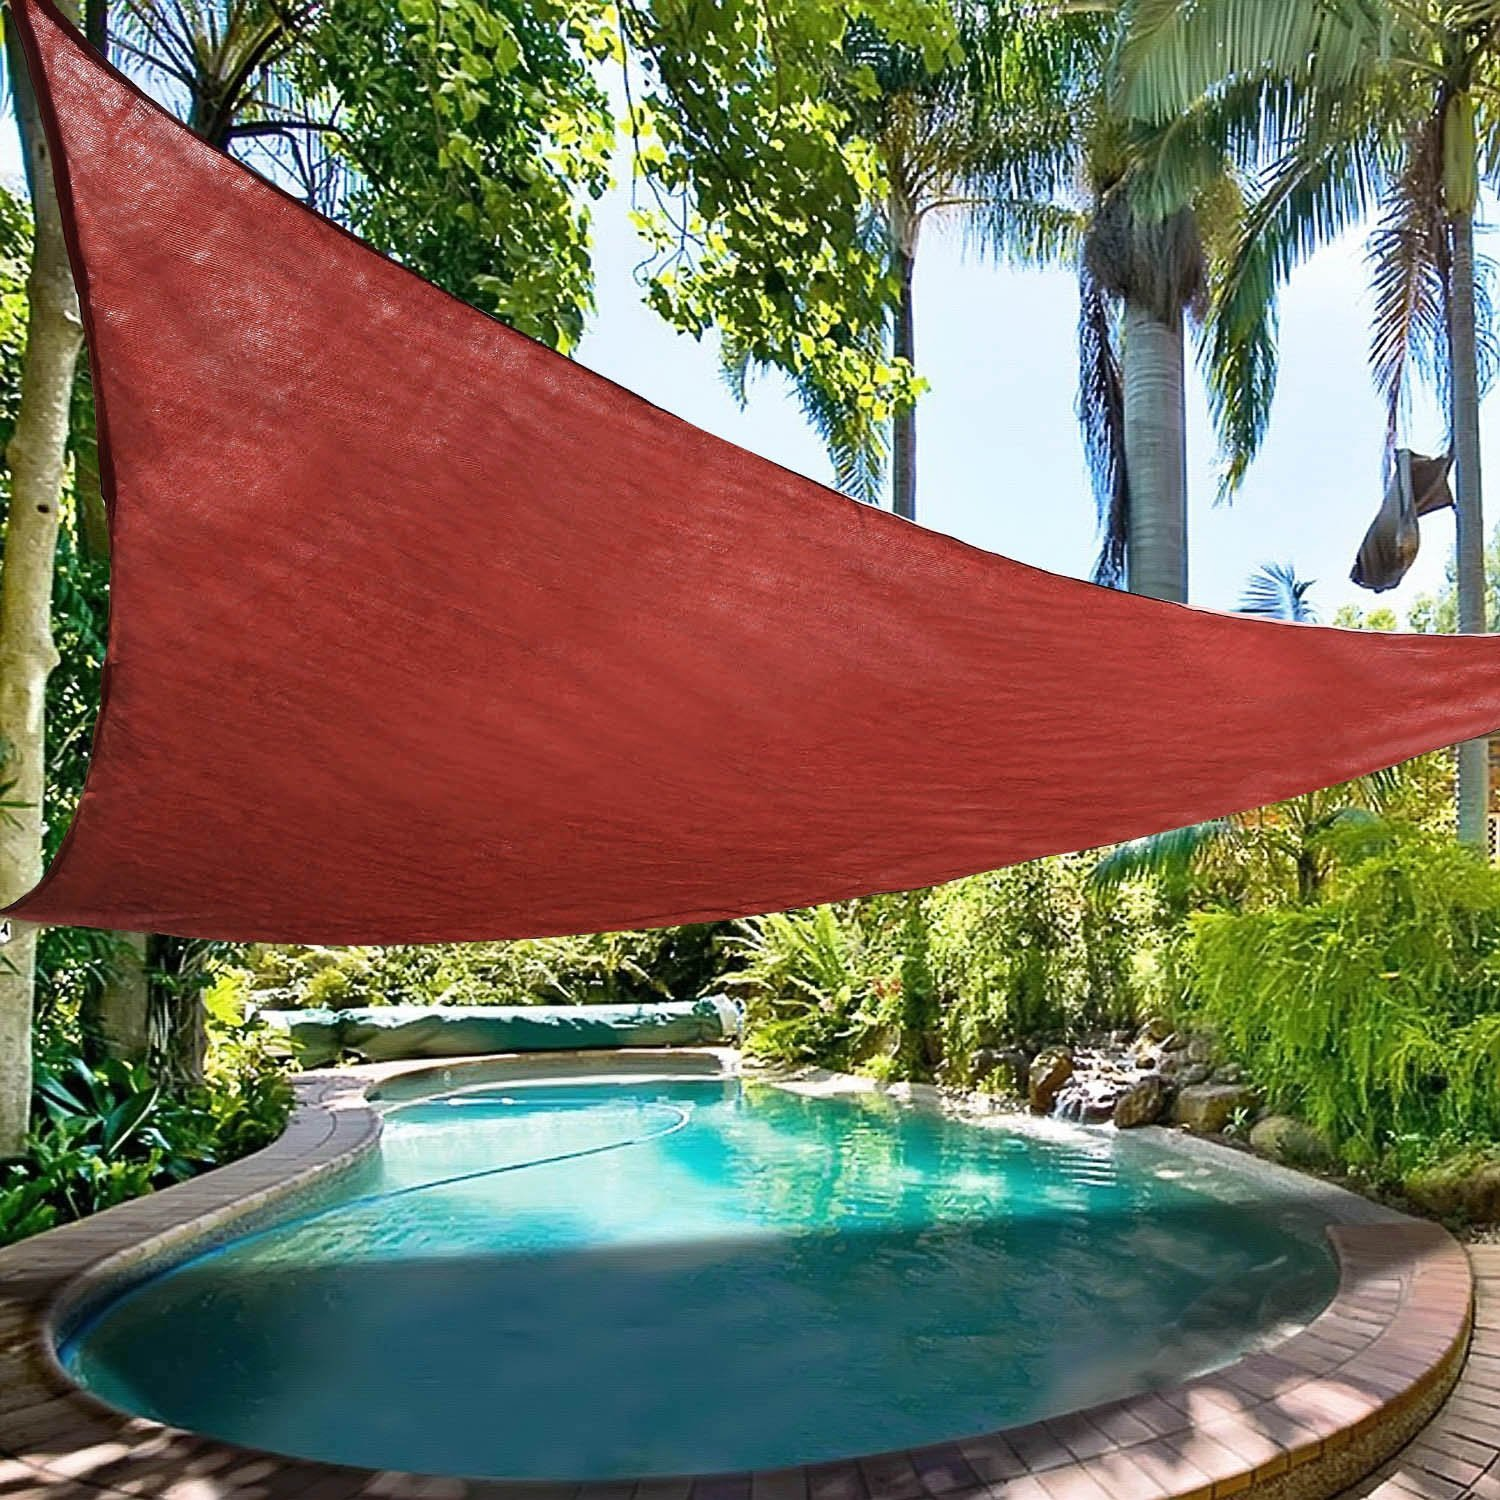 Jinguan Shade Sail UV Block Fabric Patio Outdoor Canopy Sun Shelter With  5ft PE Ropes And